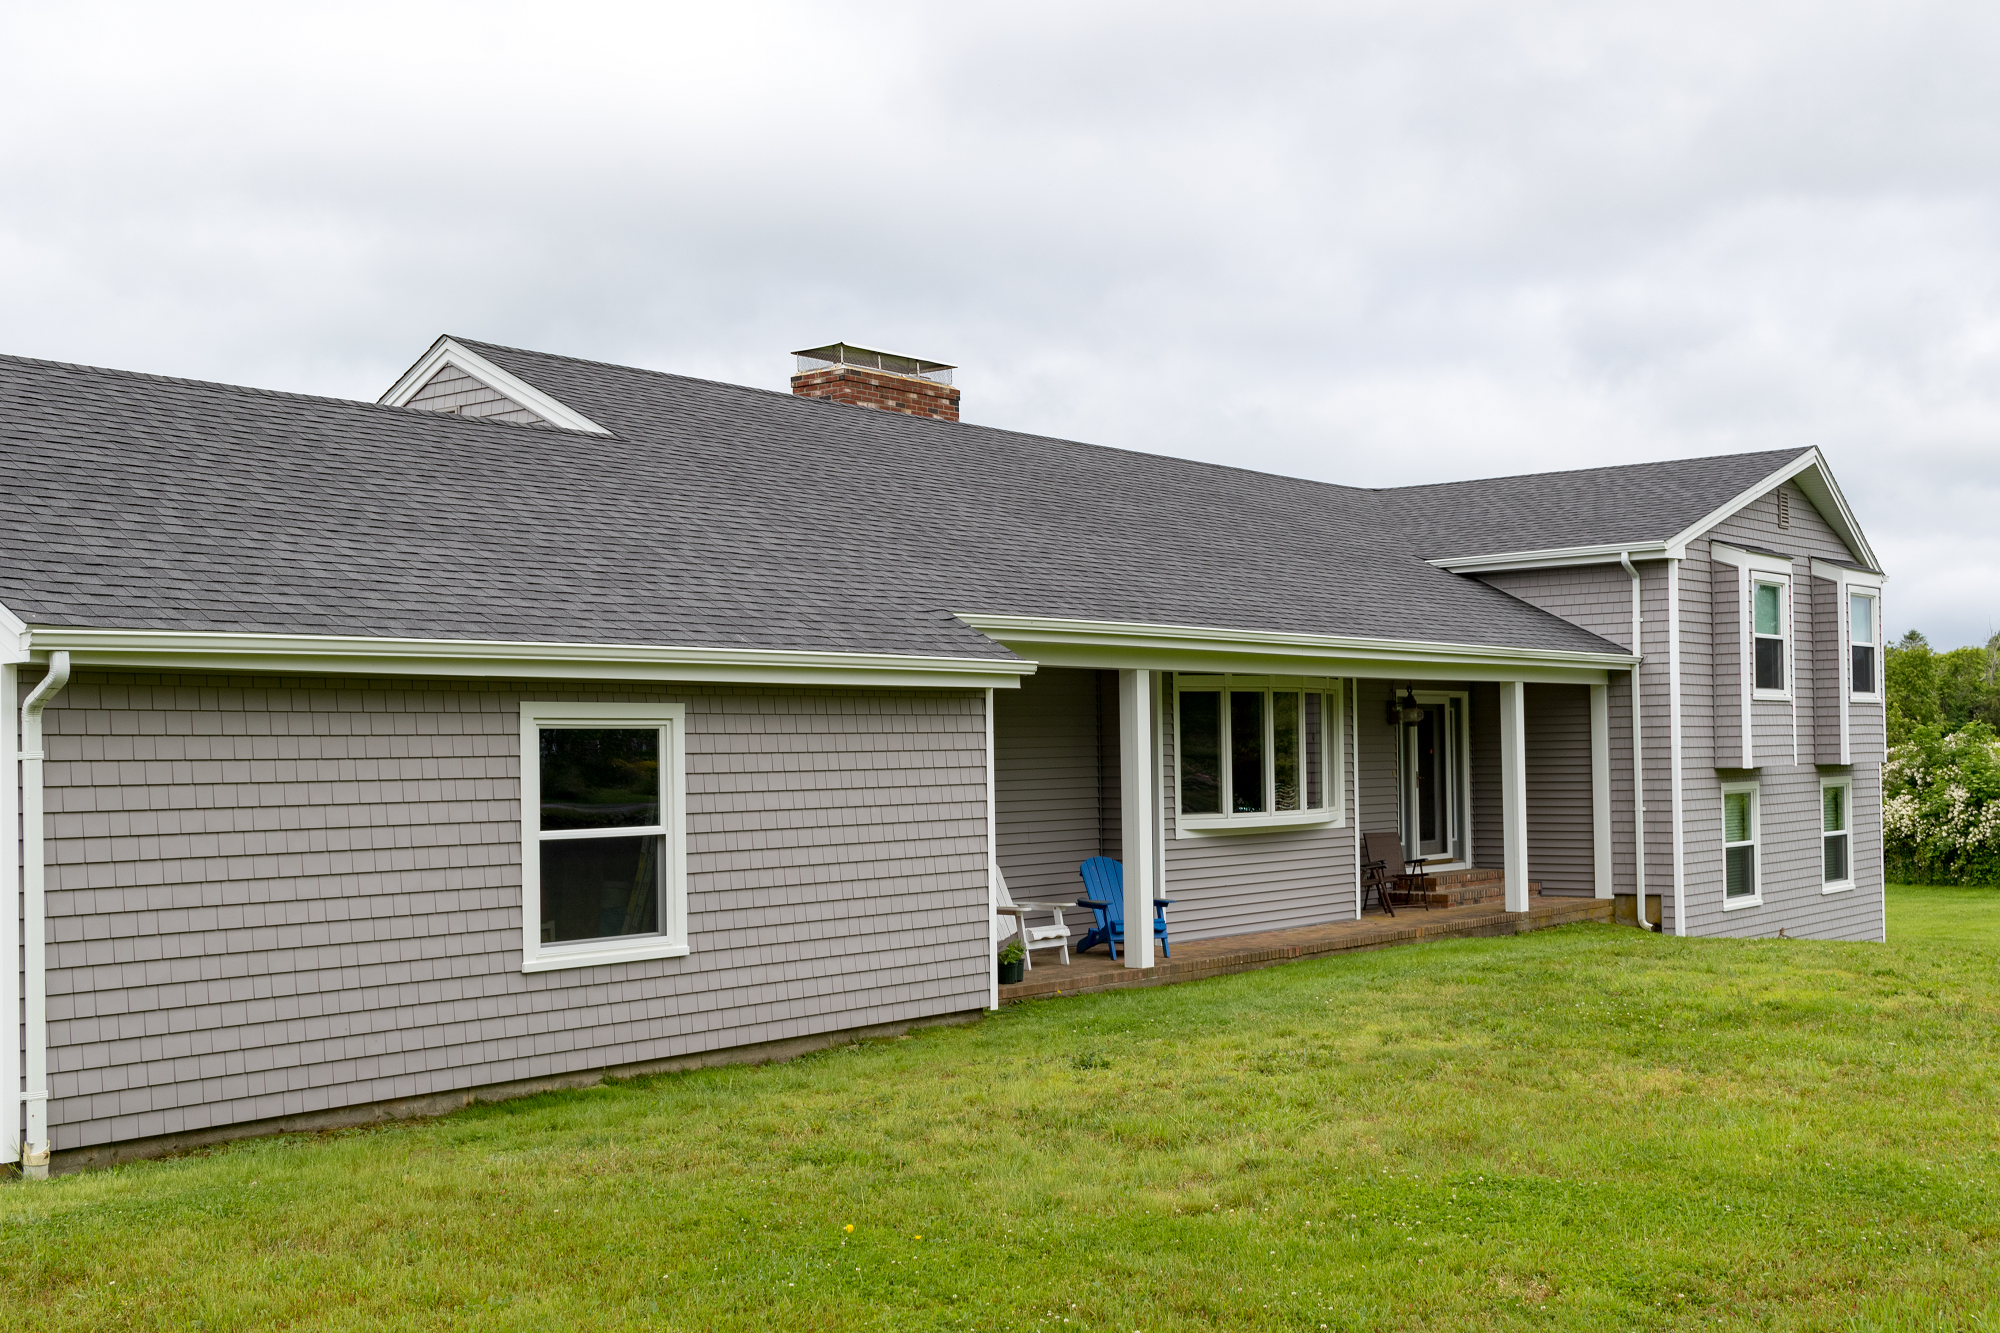 Little Compton, RI Homeowner trusts the experts at Marshall Building and Remodeling